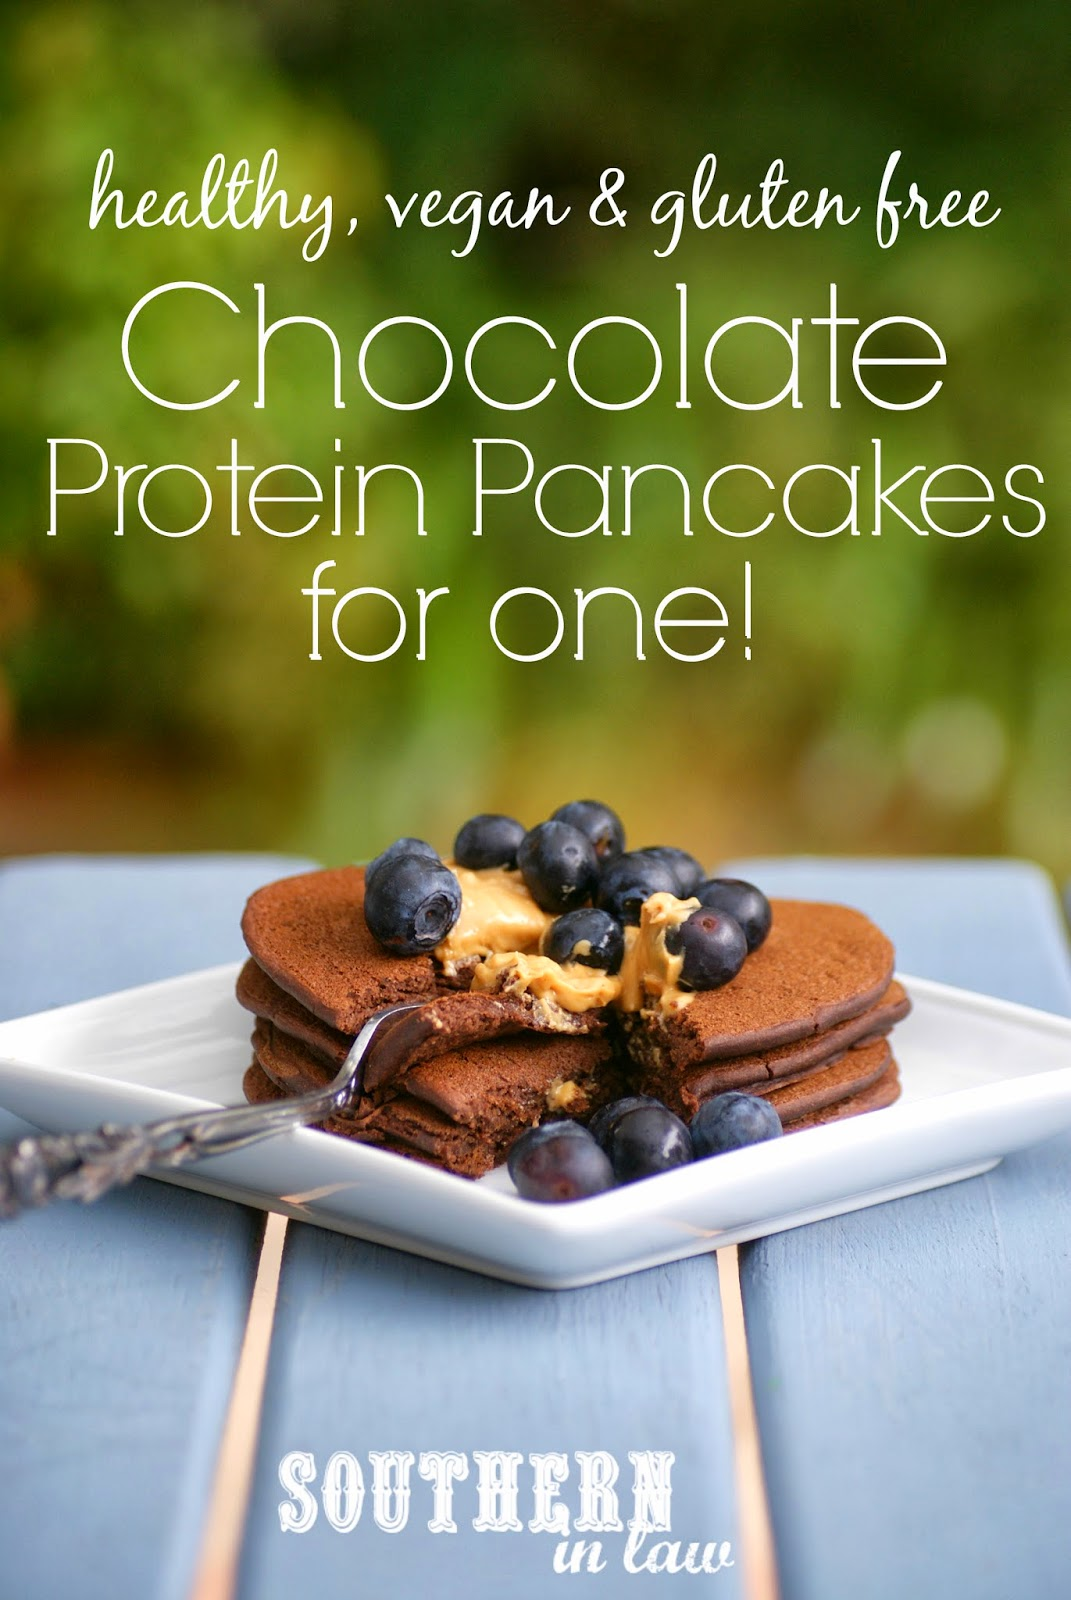 Single Serving Chocolate Protein Pancakes - Vegan, Healthy, Gluten Free, Sugar Free Recipe